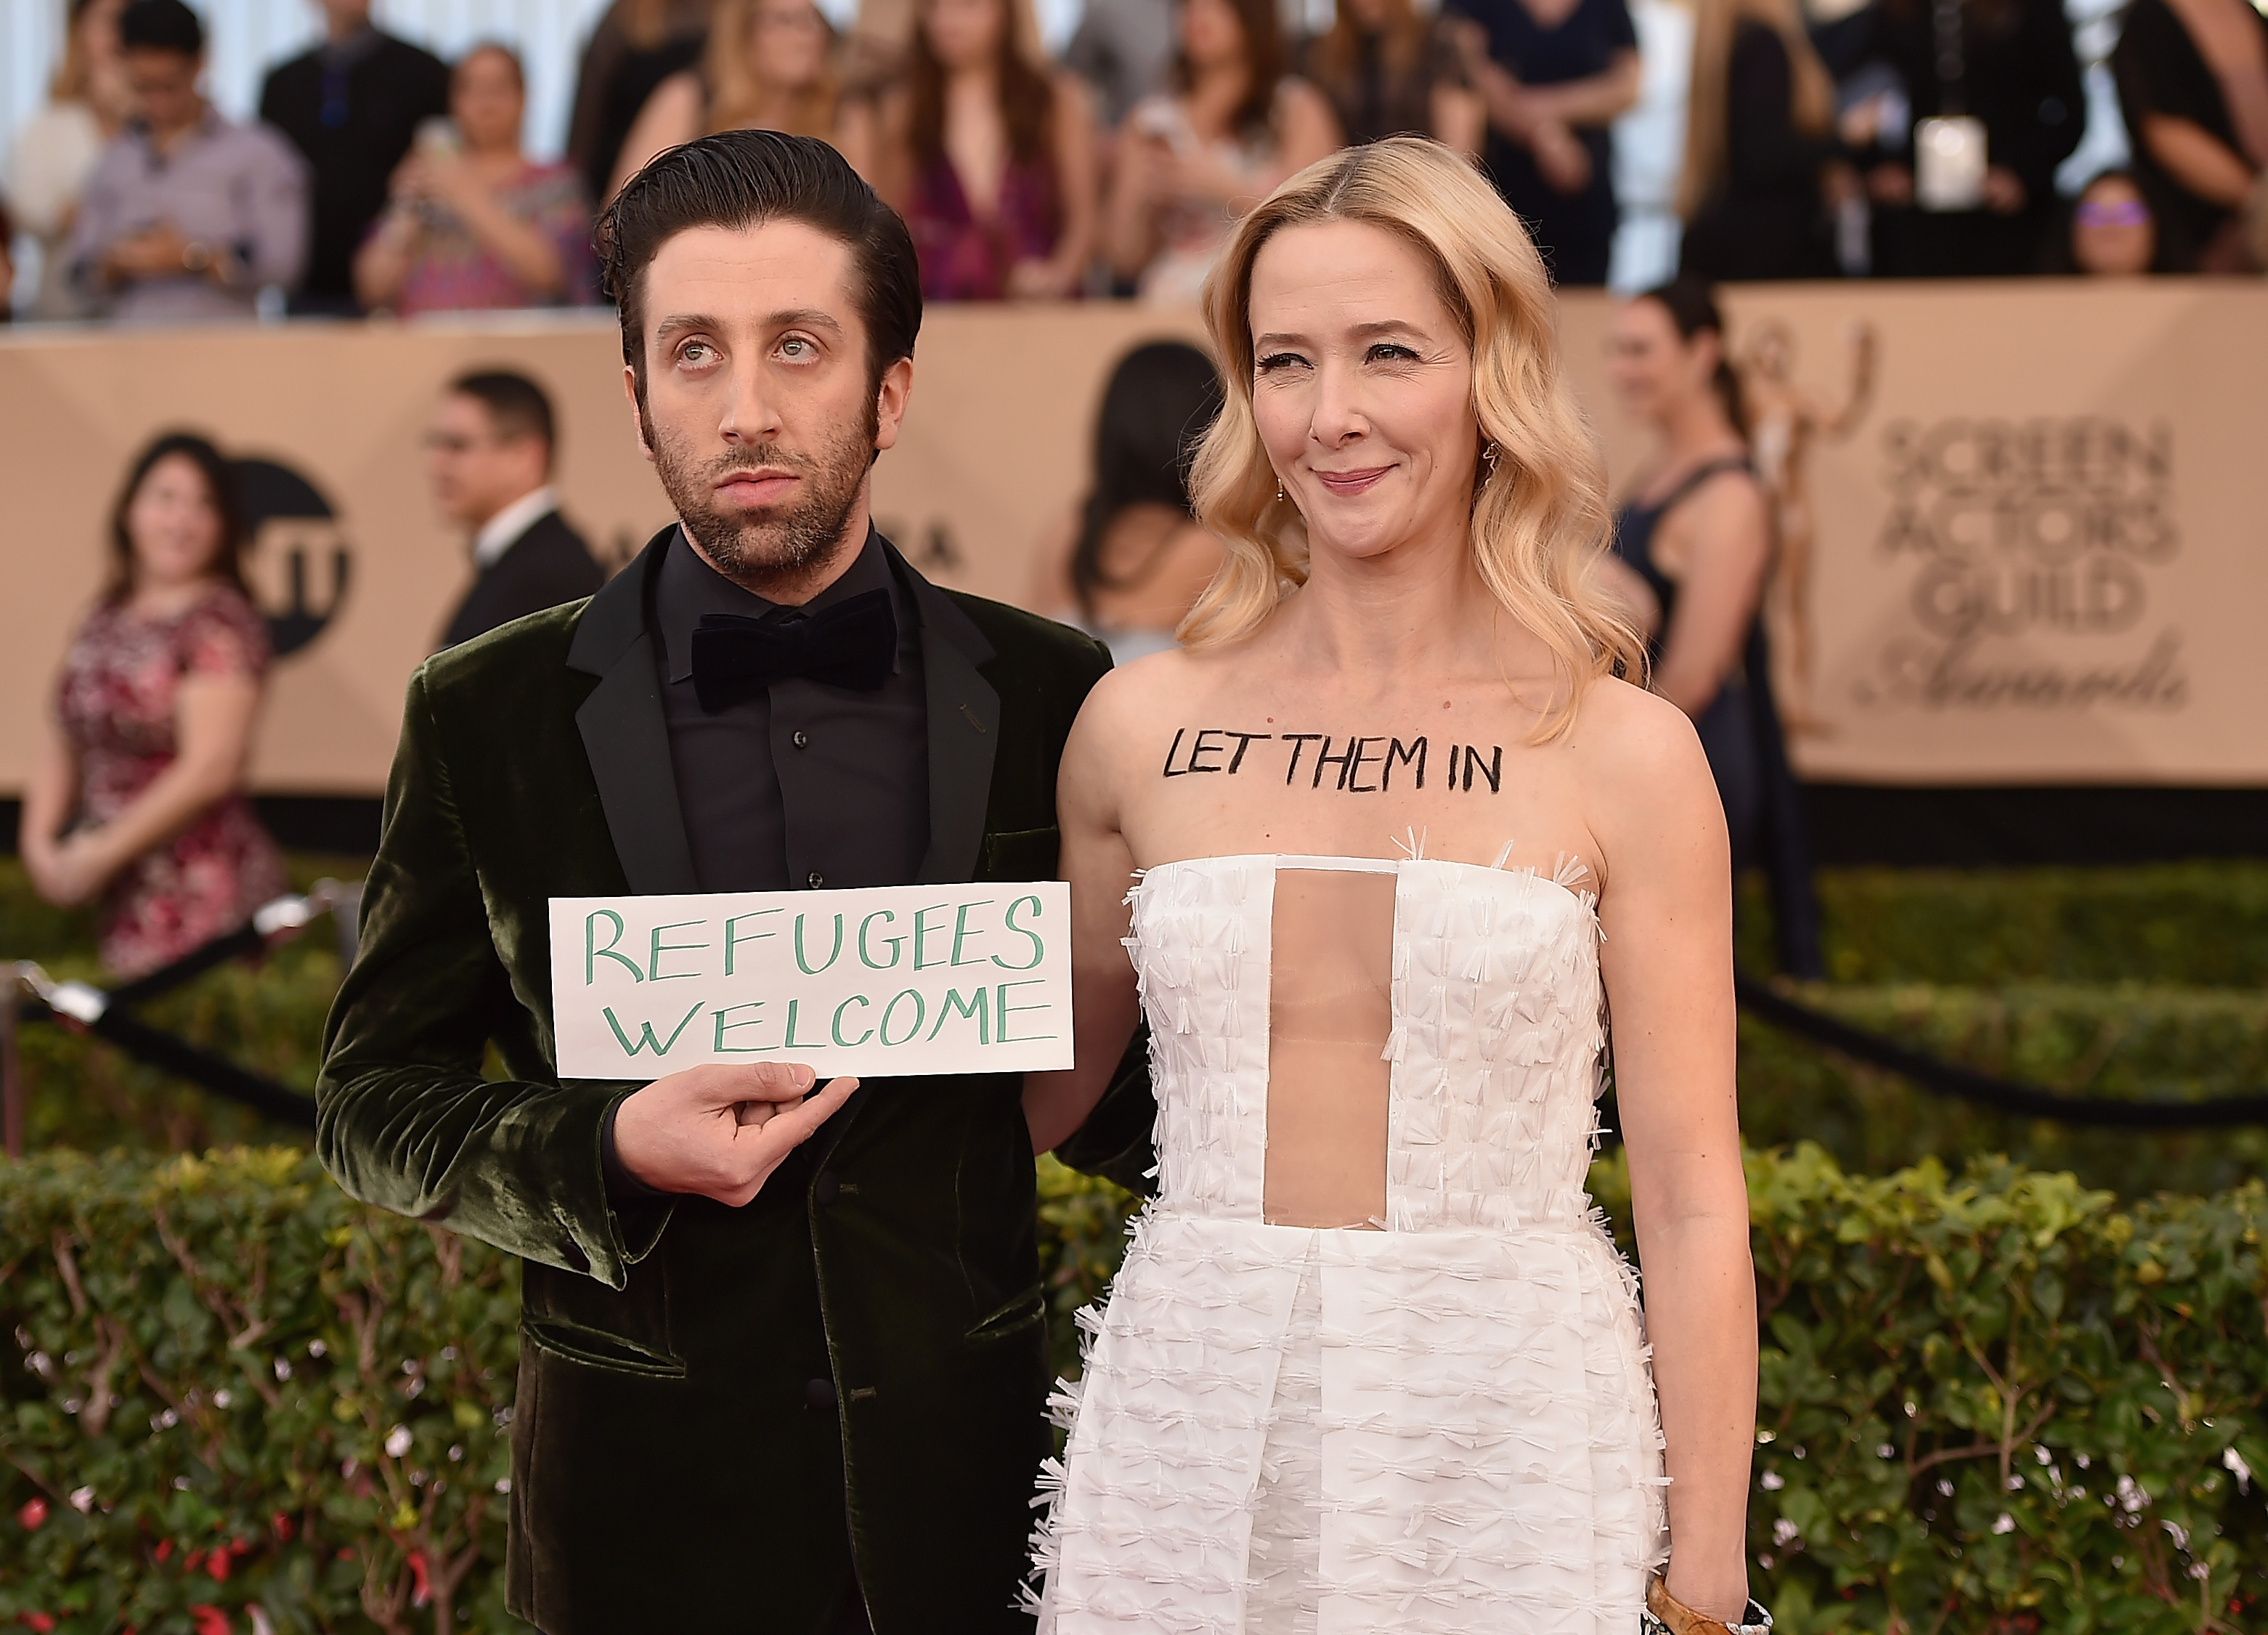 SAG Awards: Simon Helberg, Jocelyn Towne's Red Carpet Protest